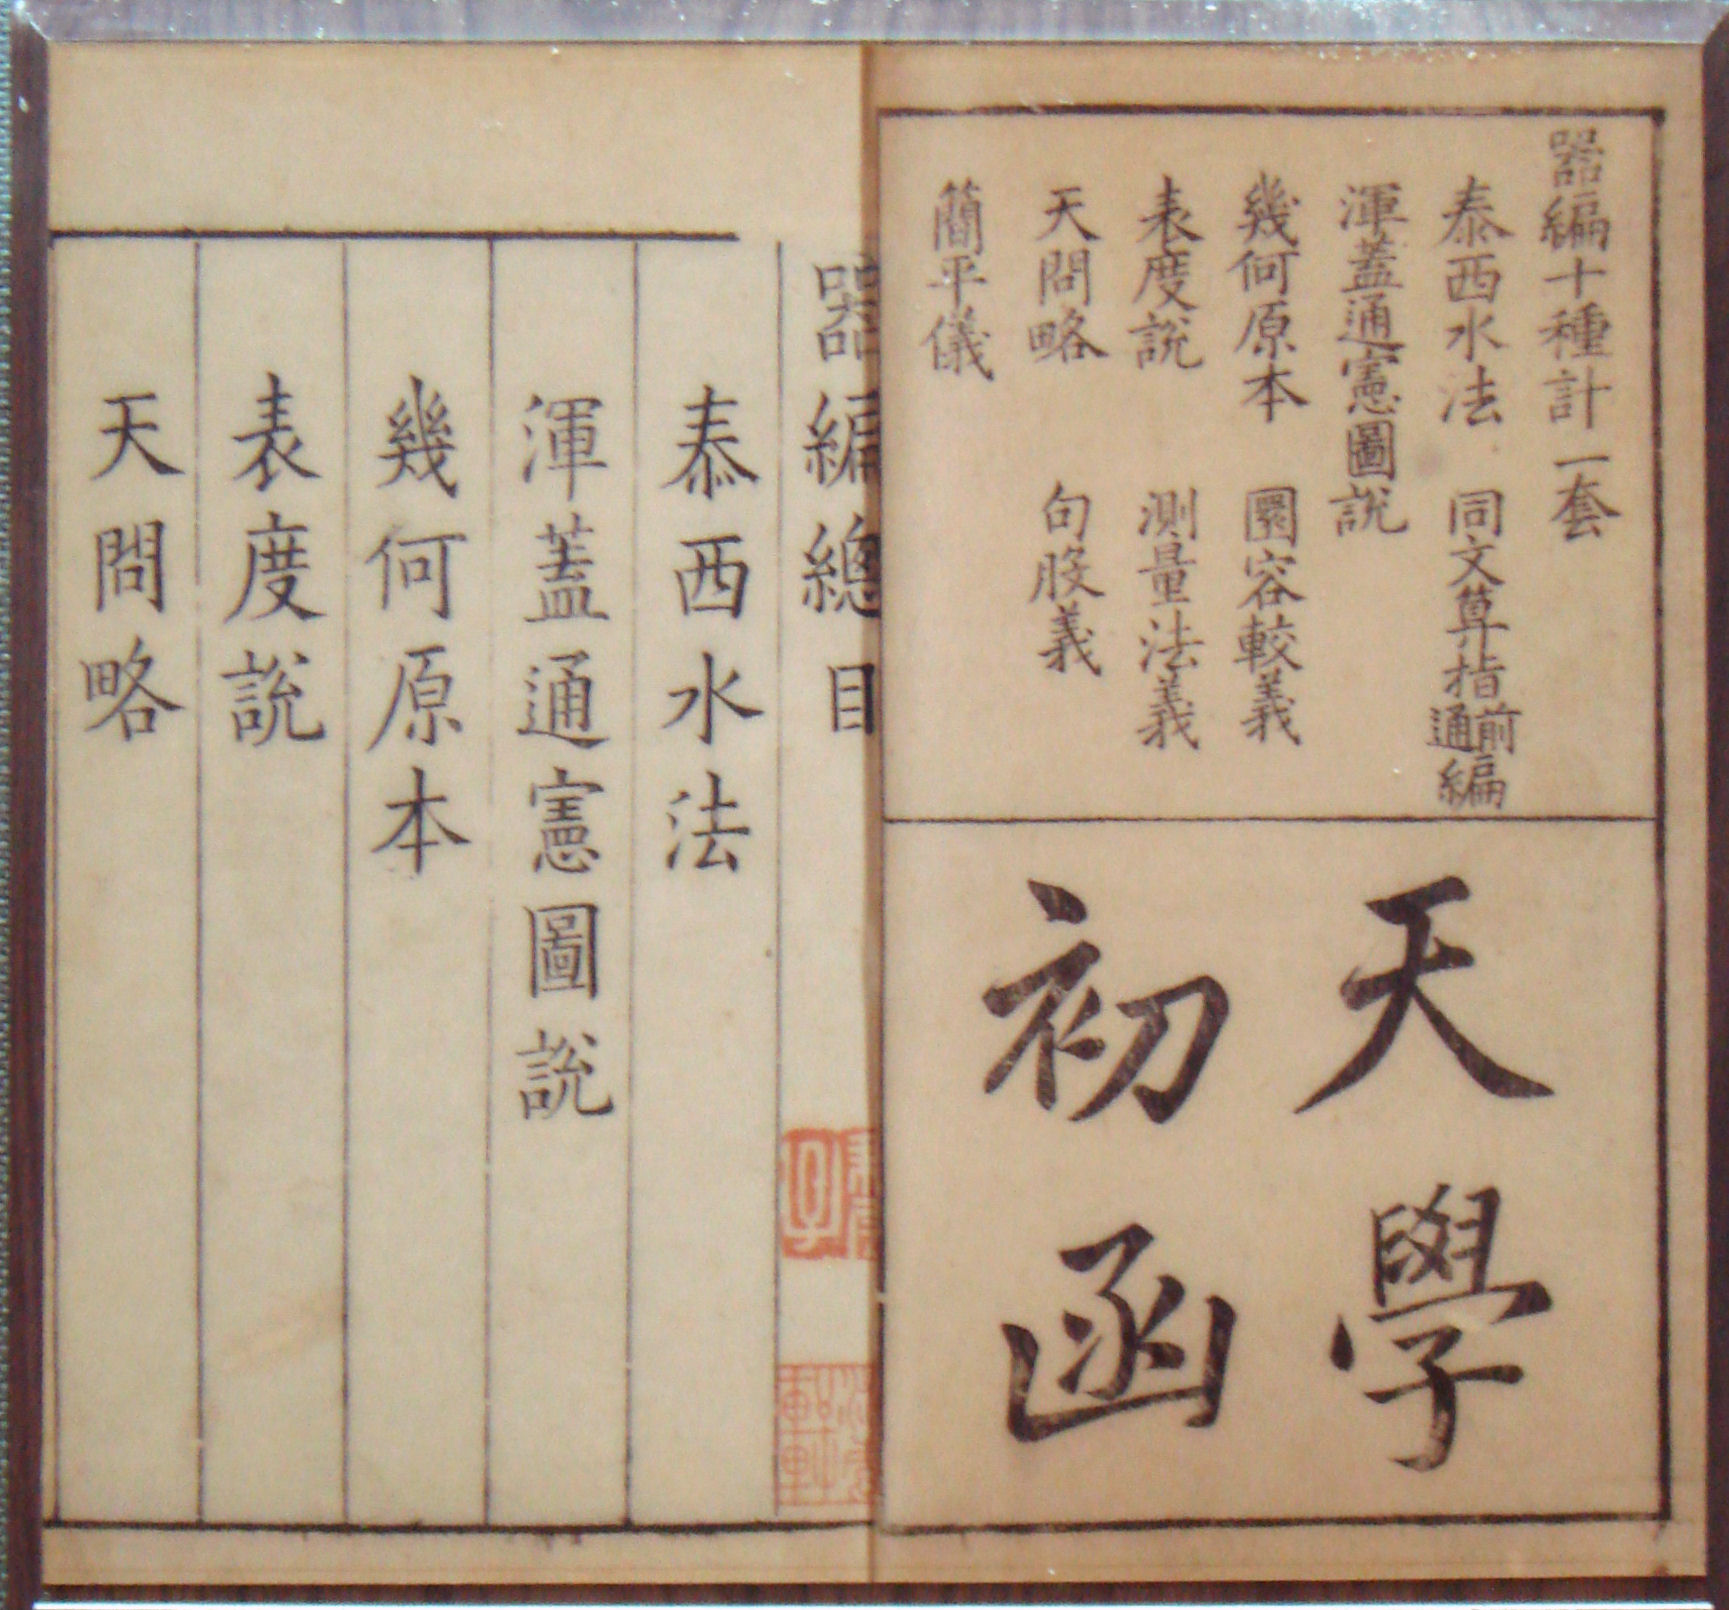 an analysis of the modernization concept in the 19th century china Speaking at the 19th congress of china's the creation and introduction of new tactical and strategic concepts, the analysis of china still lacks a modern.